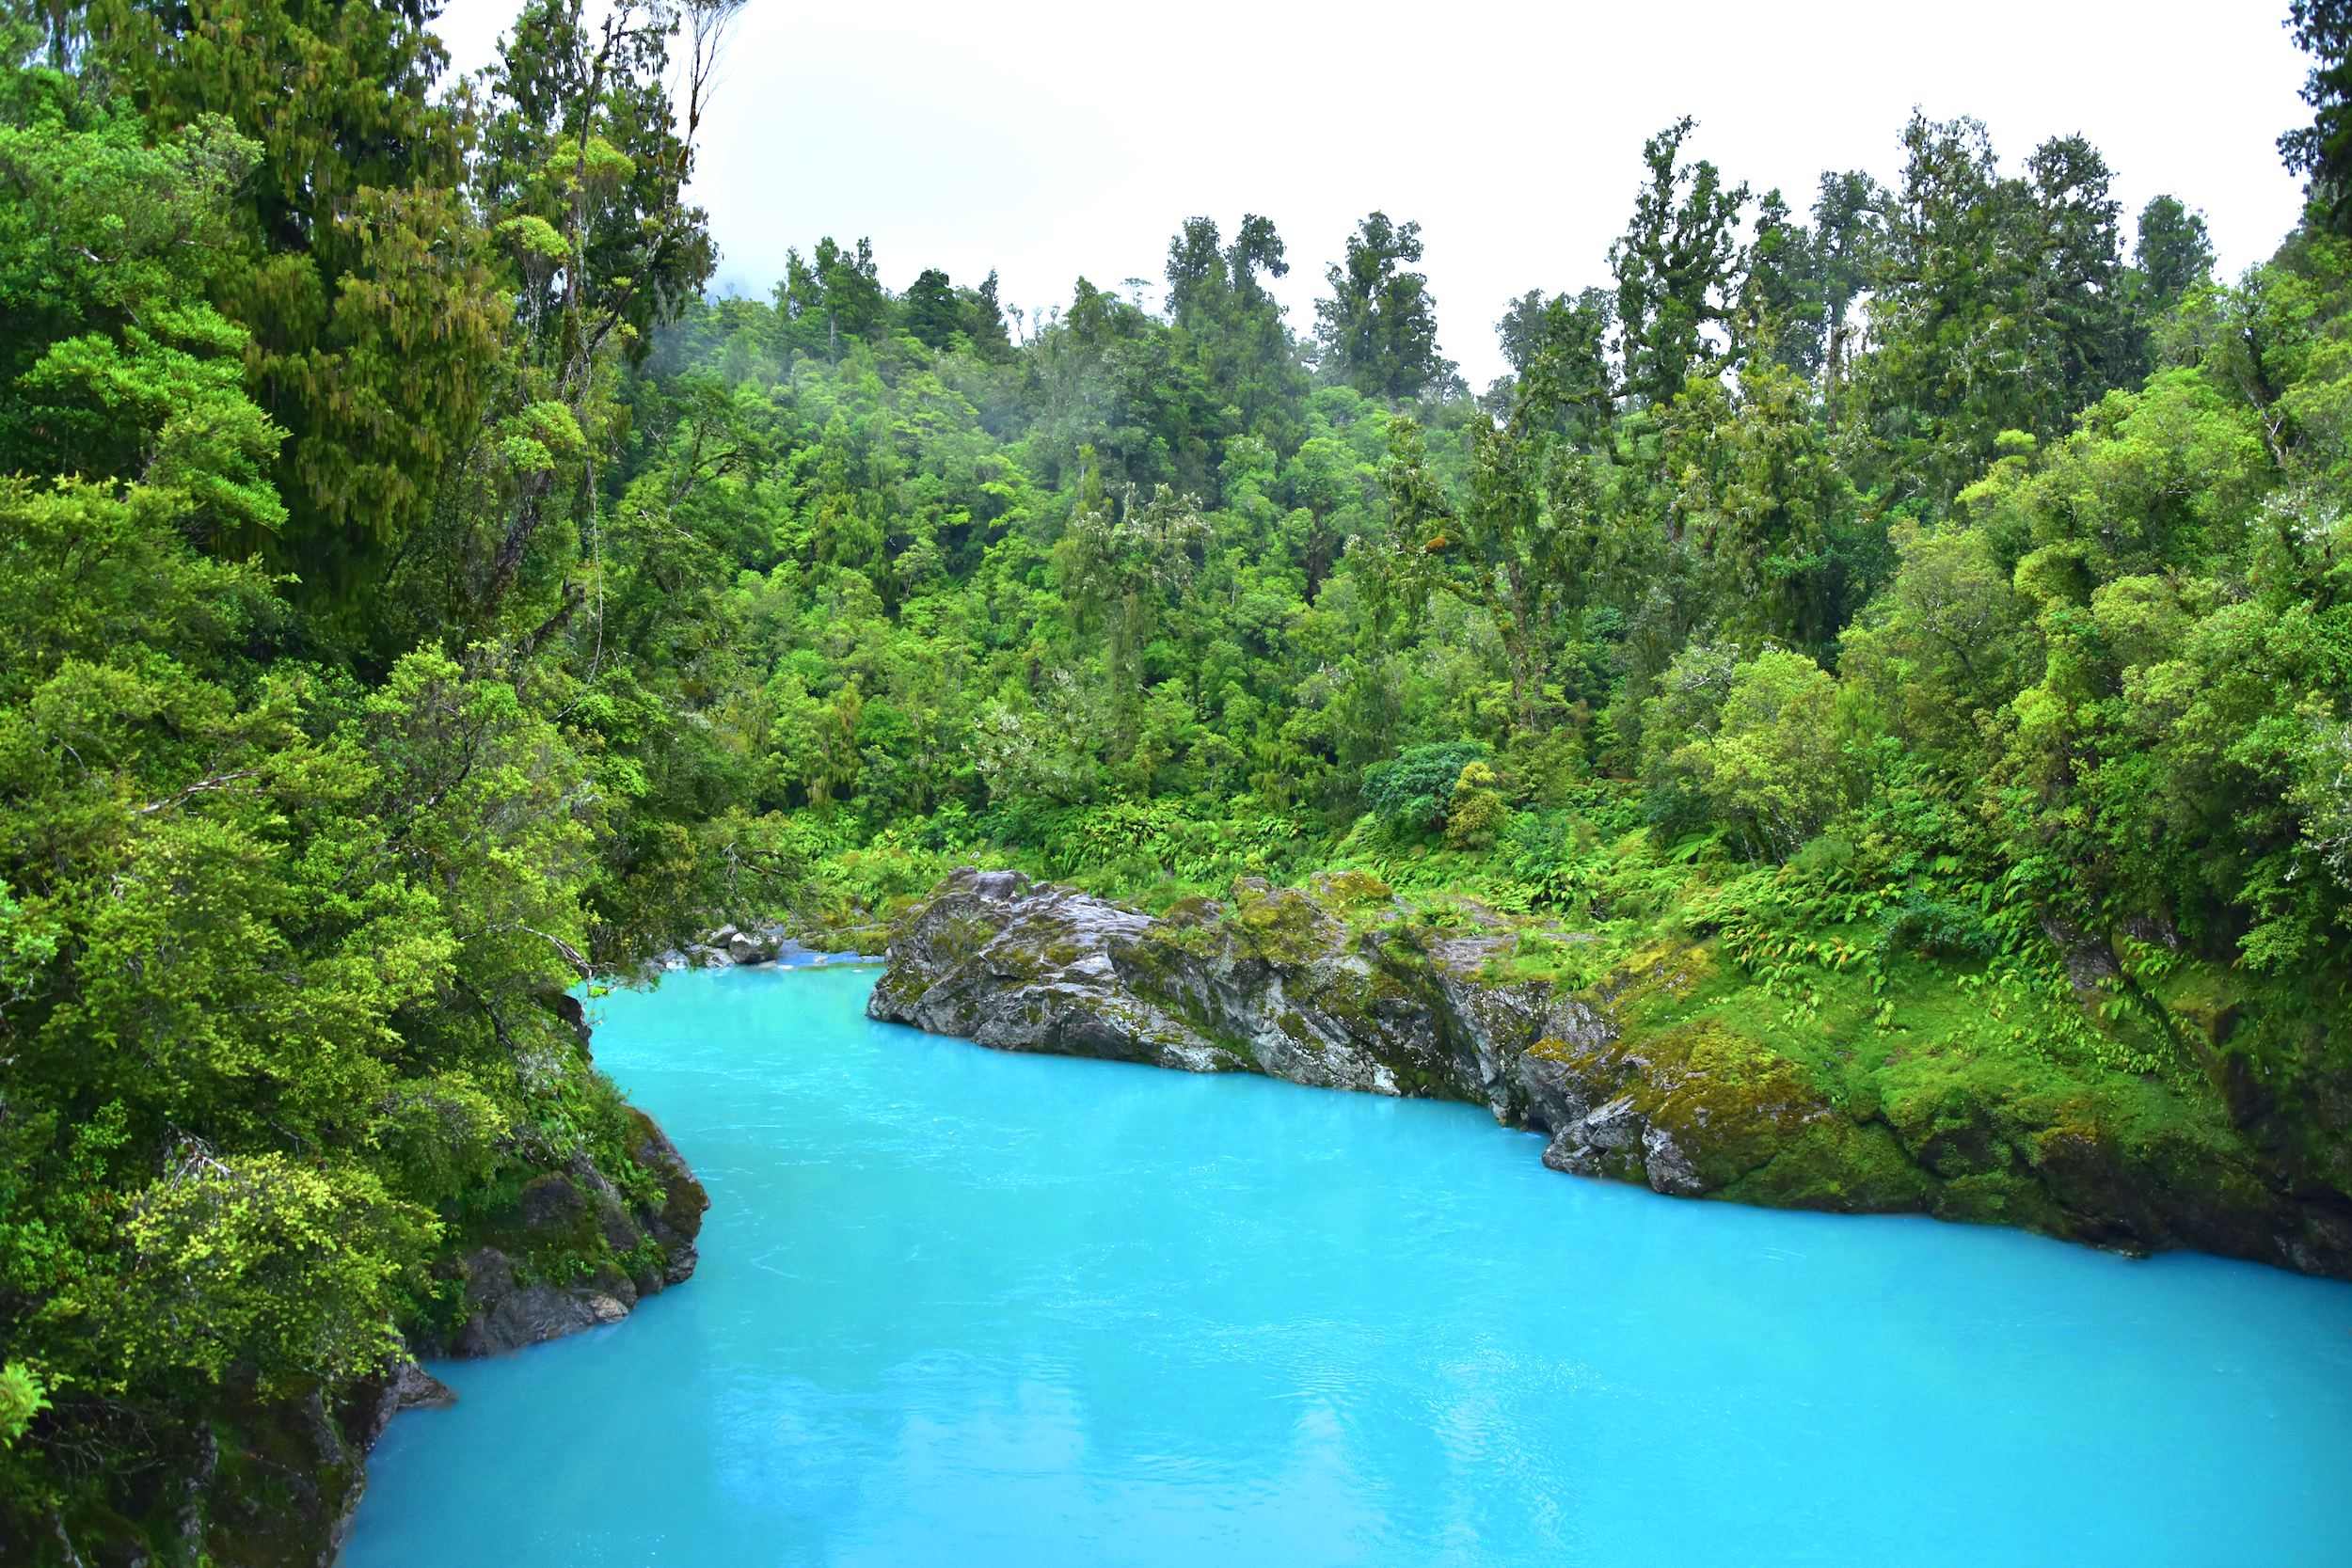 The river that flows through Hokitika Gorge is a captivating blue-green colour, caused by particles of mineral-rich schist rock and sandstone that are suspended in the water.